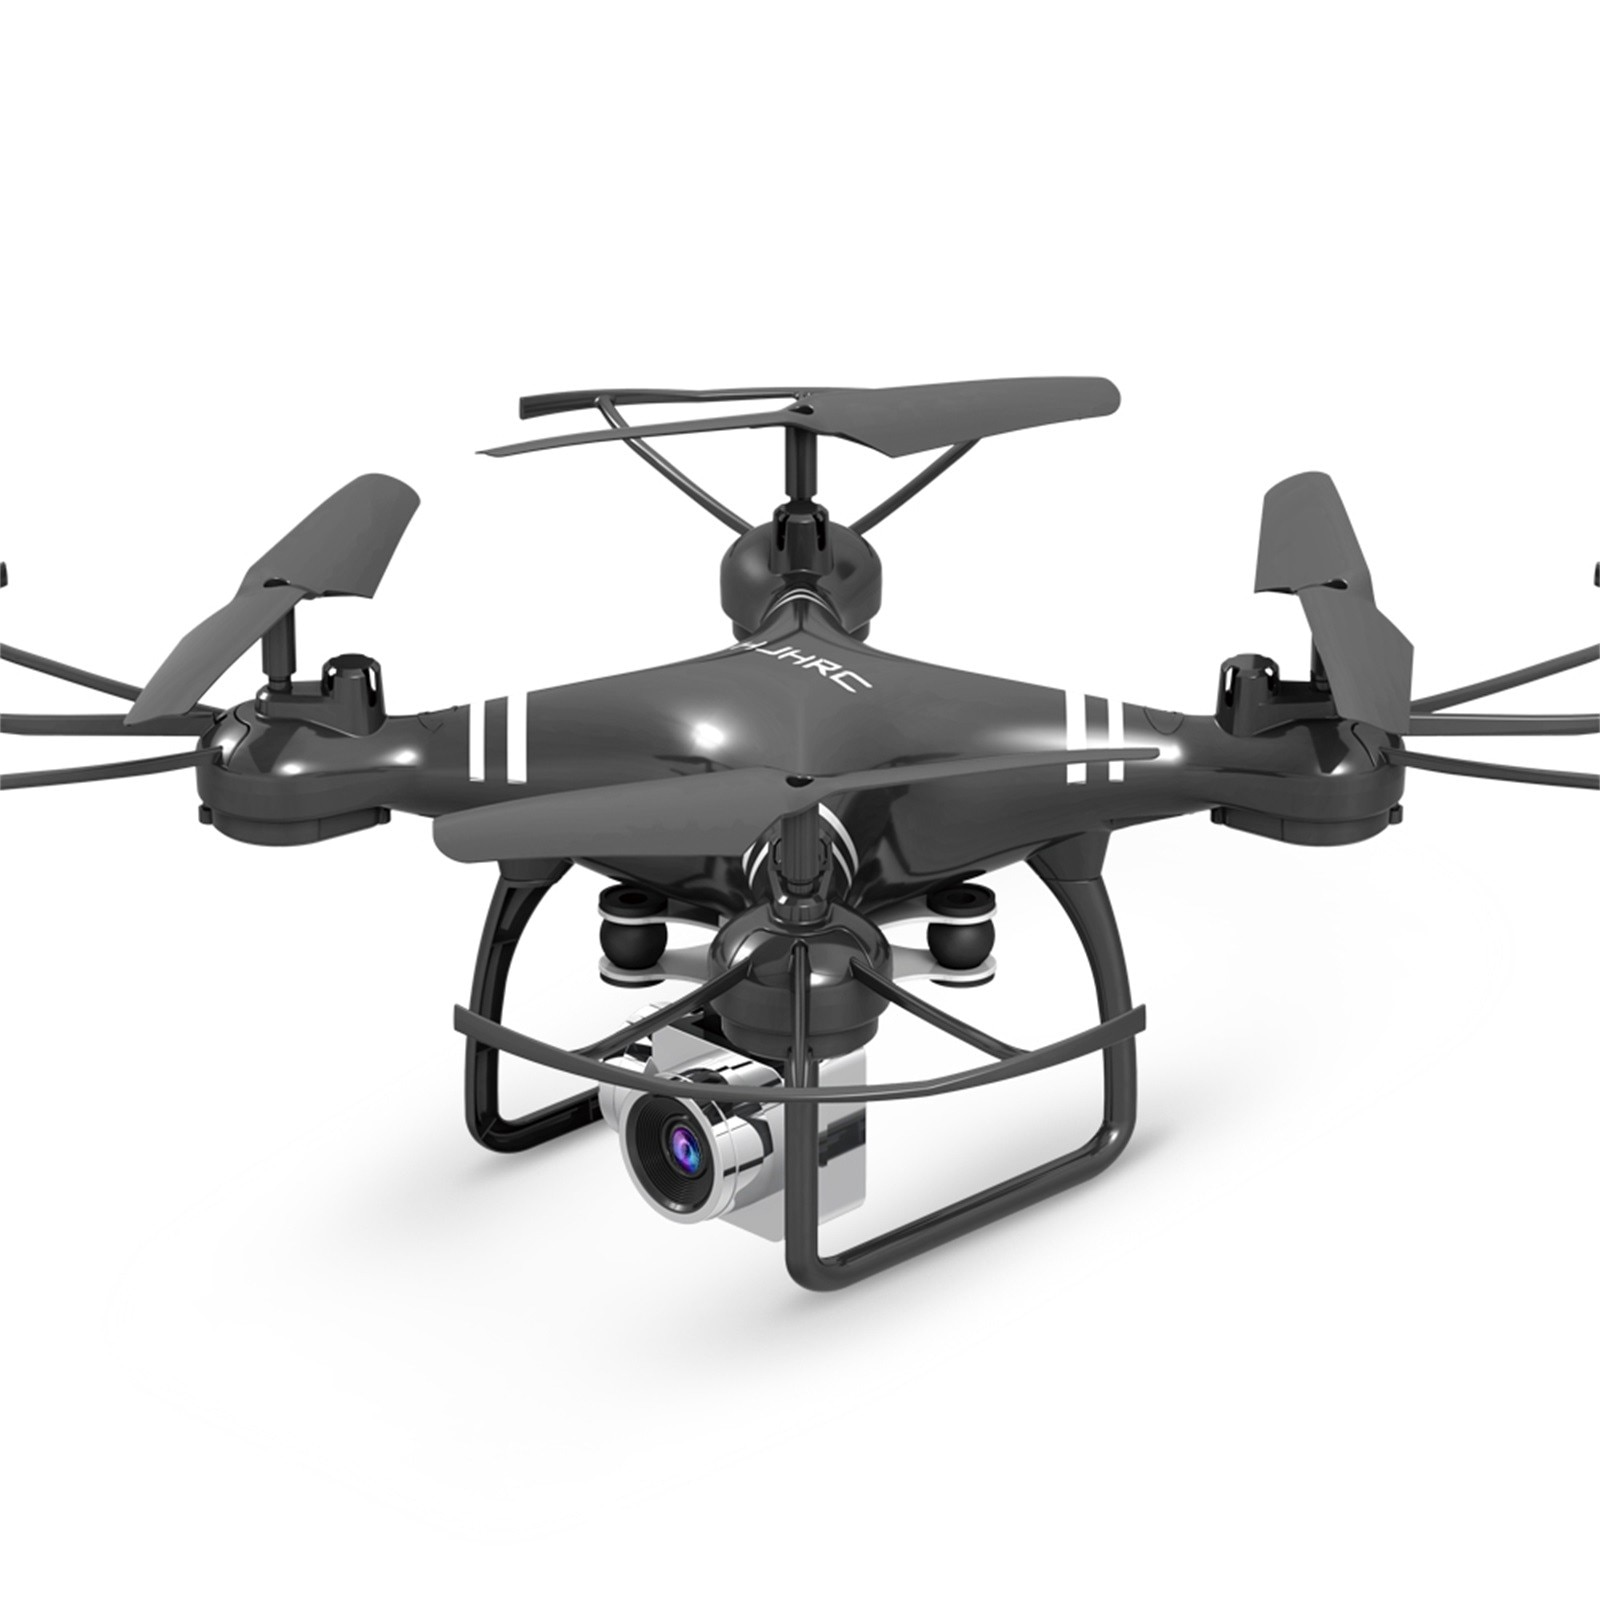 Hc430140d71ff4953b168145b94dfadcb5 - Hjhrc Four-axis Aerial Photography Aircraft Drone With Camera Hd 4k Wifi Fpv Foldable Drone Height Holding Headless Quadcopter